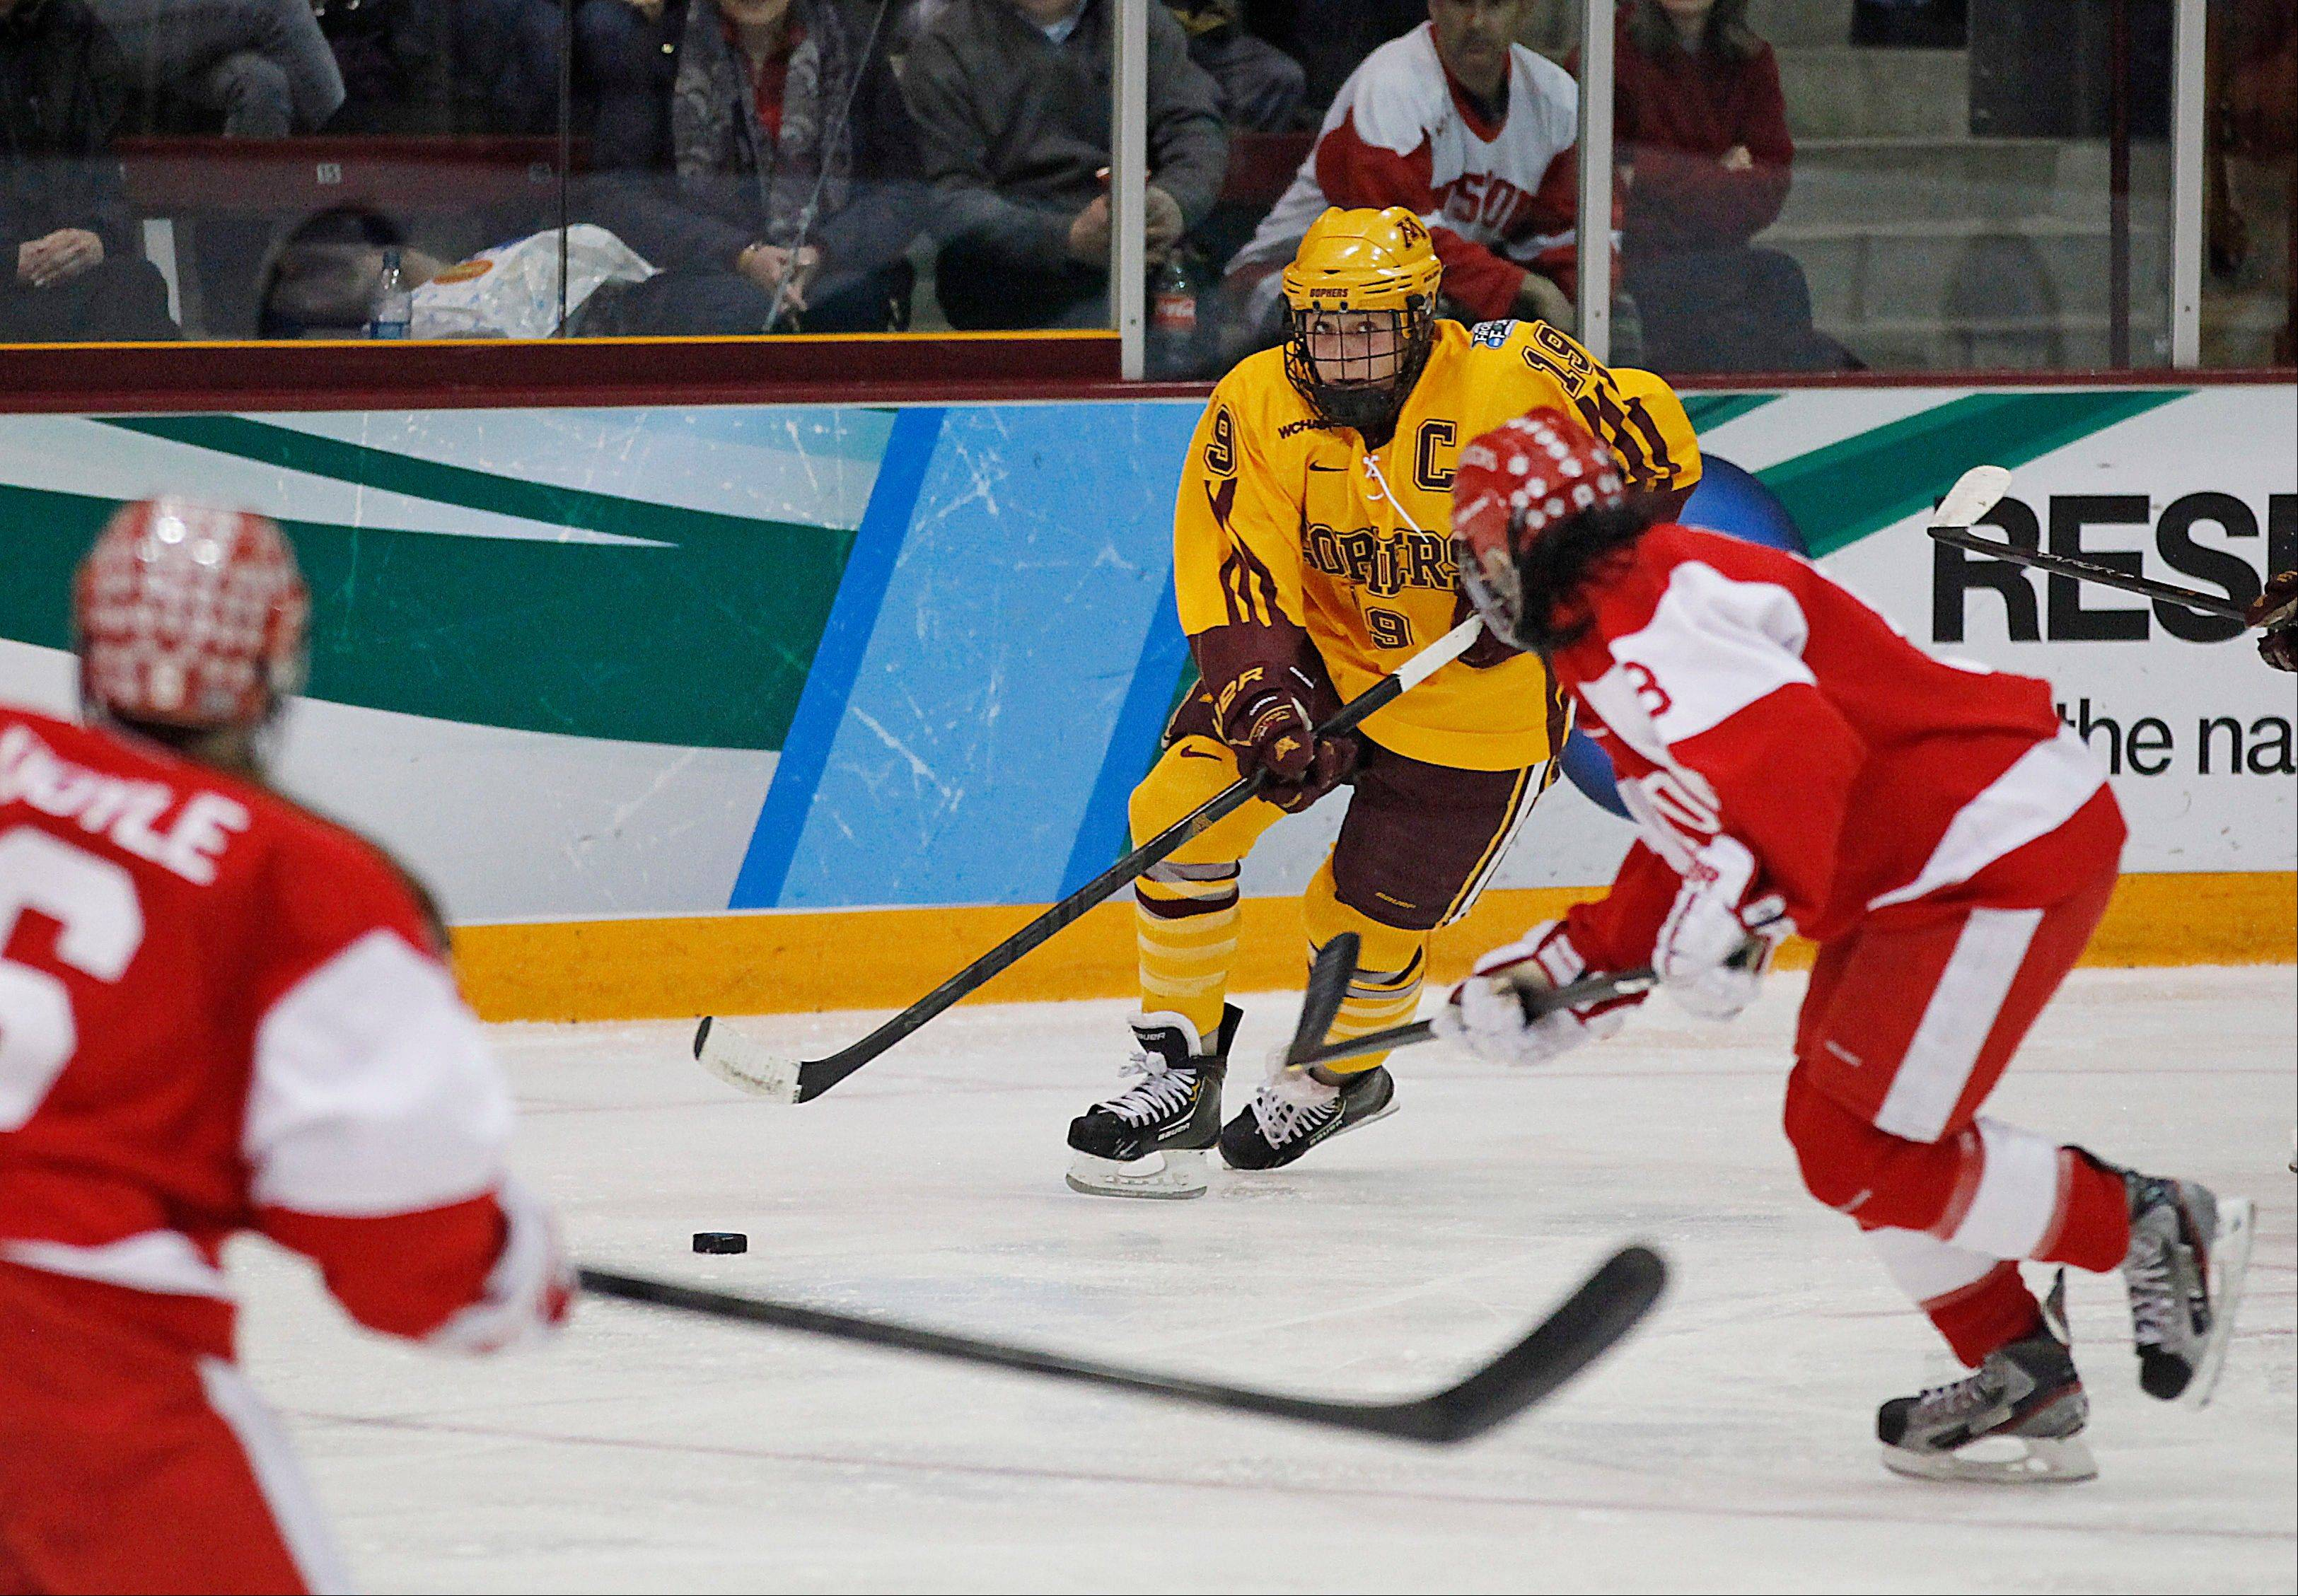 Minnesota defender and Buffalo Grove native Megan Bozek looks to pass against Boston University in the women's Frozen Four NCAA Championship college hockey game Sunday in Minneapolis.